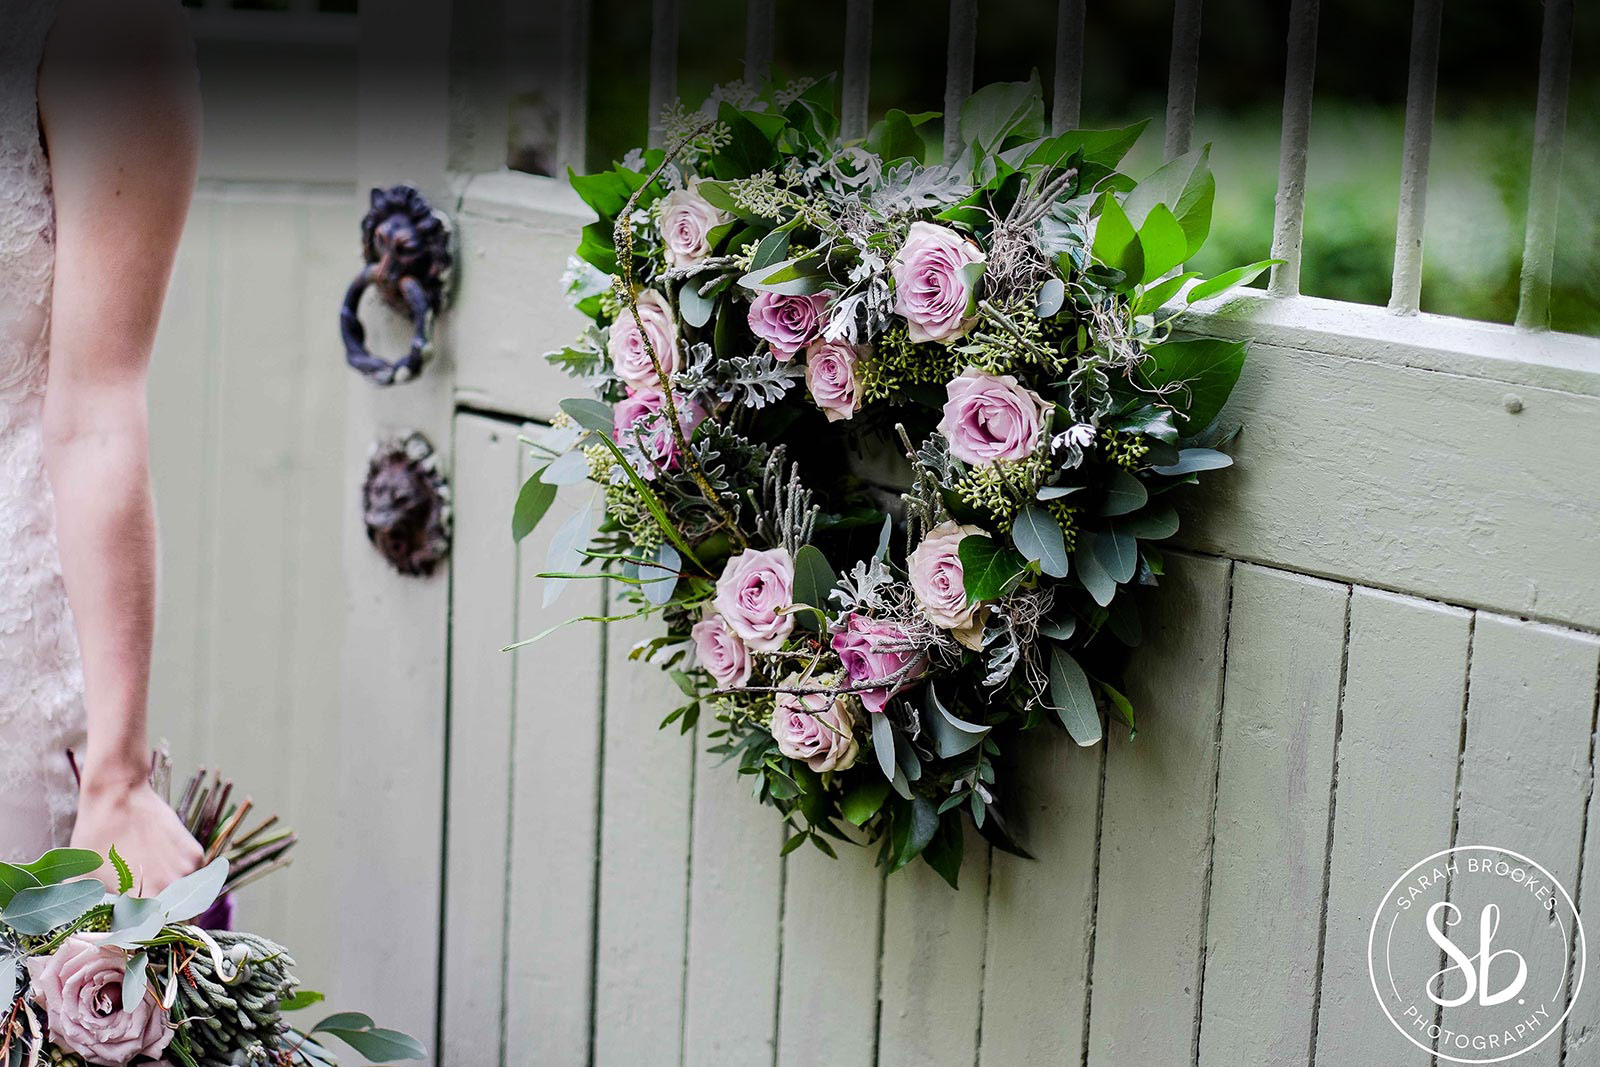 bespoke-floral-design-weddings-nantwich-cheshire-21